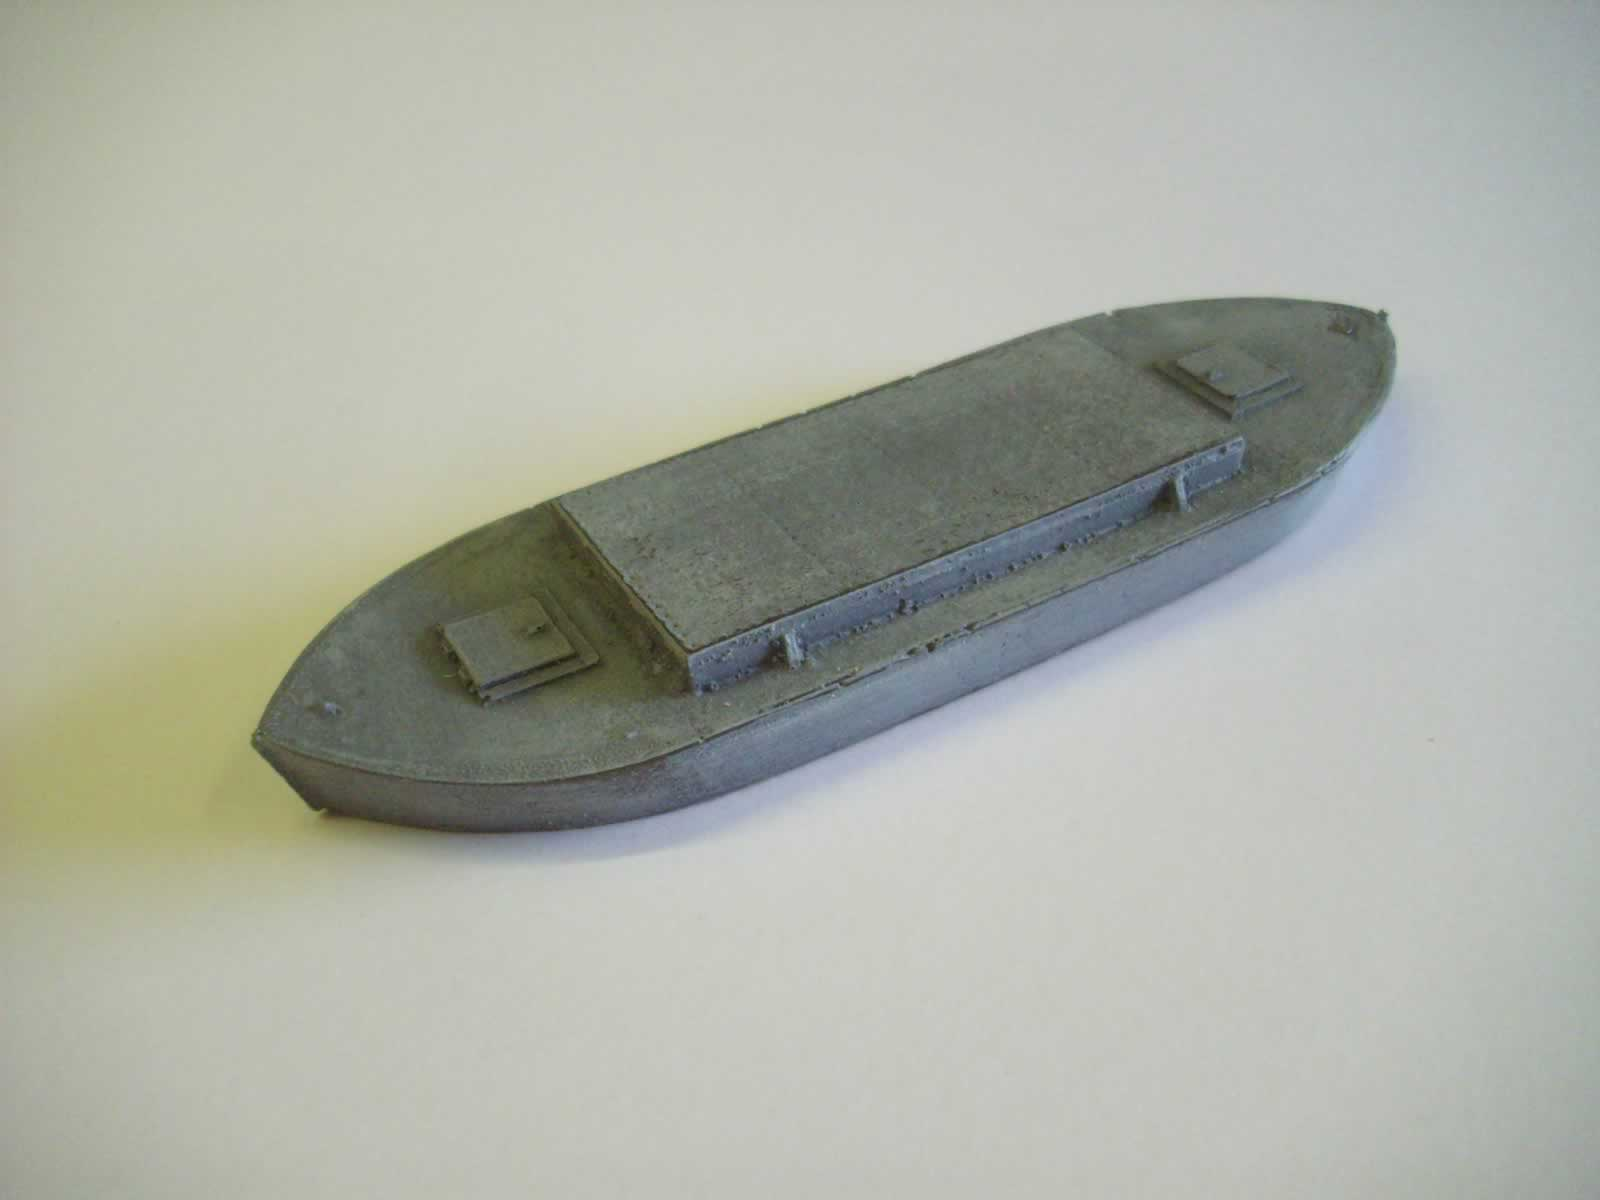 STEEL BOAT FOR PONTOON BRIDGE